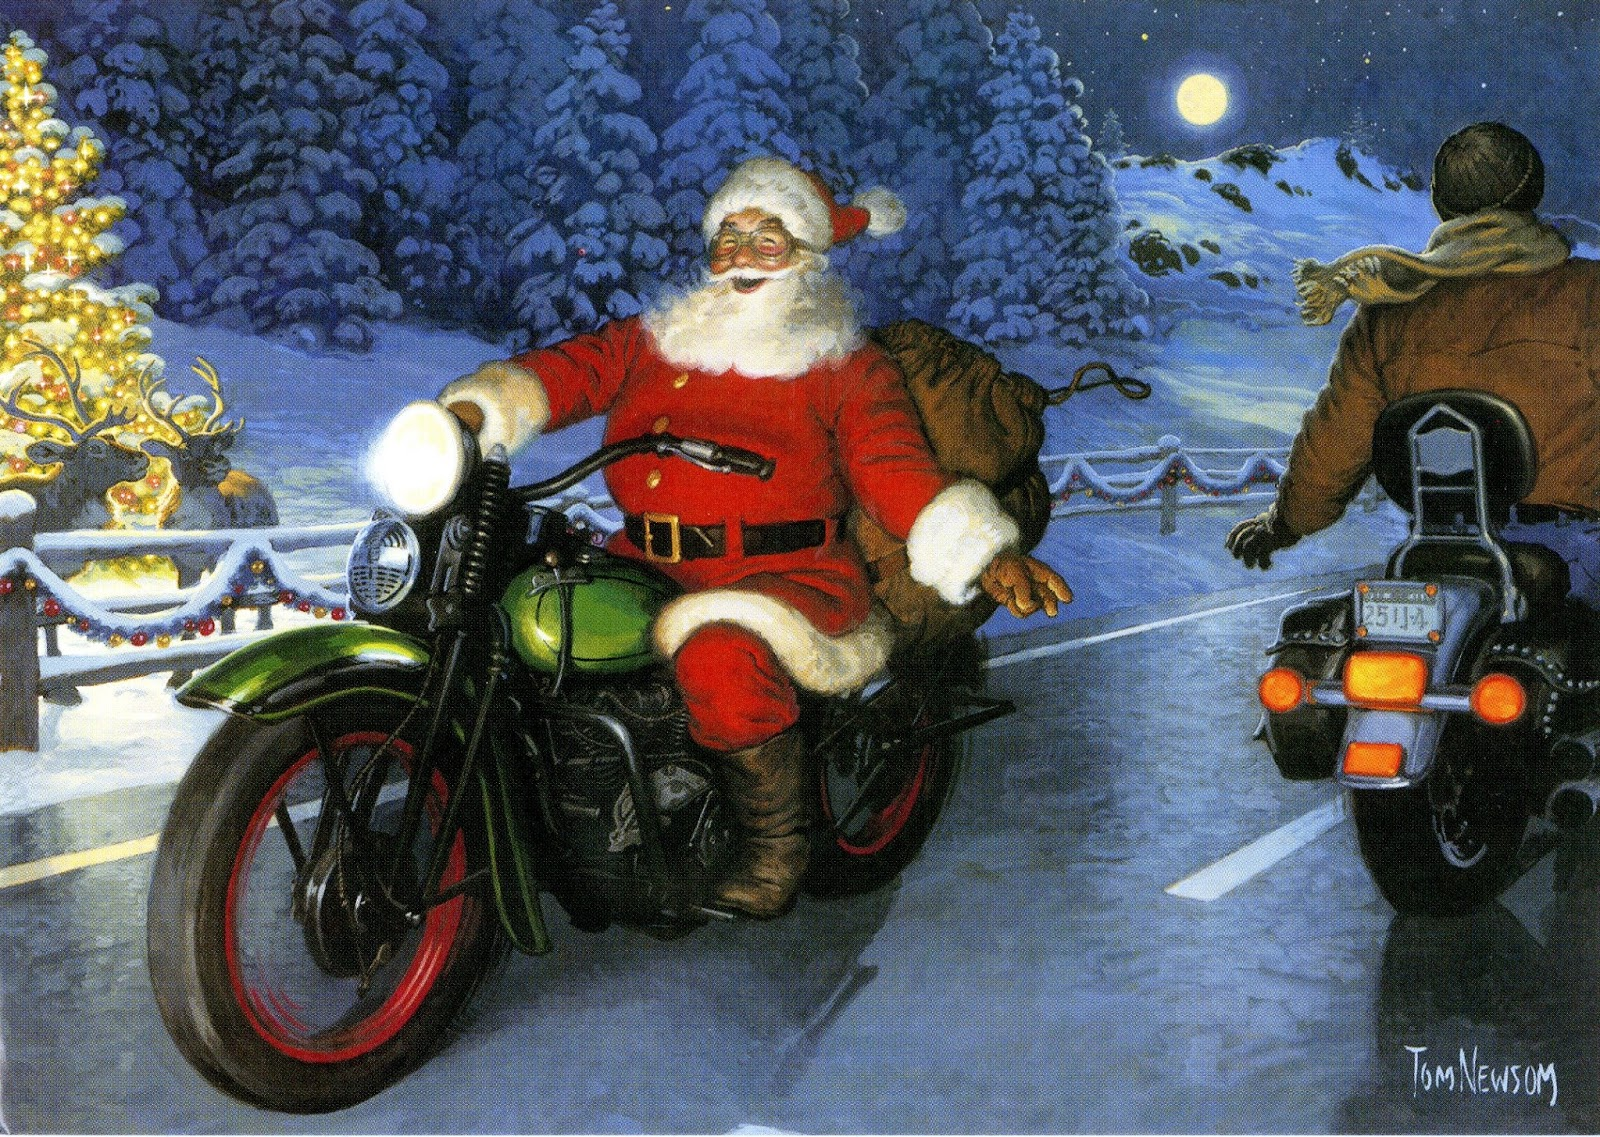 Cecilie s moto journal a christmas tale of santa s motorcycle boots